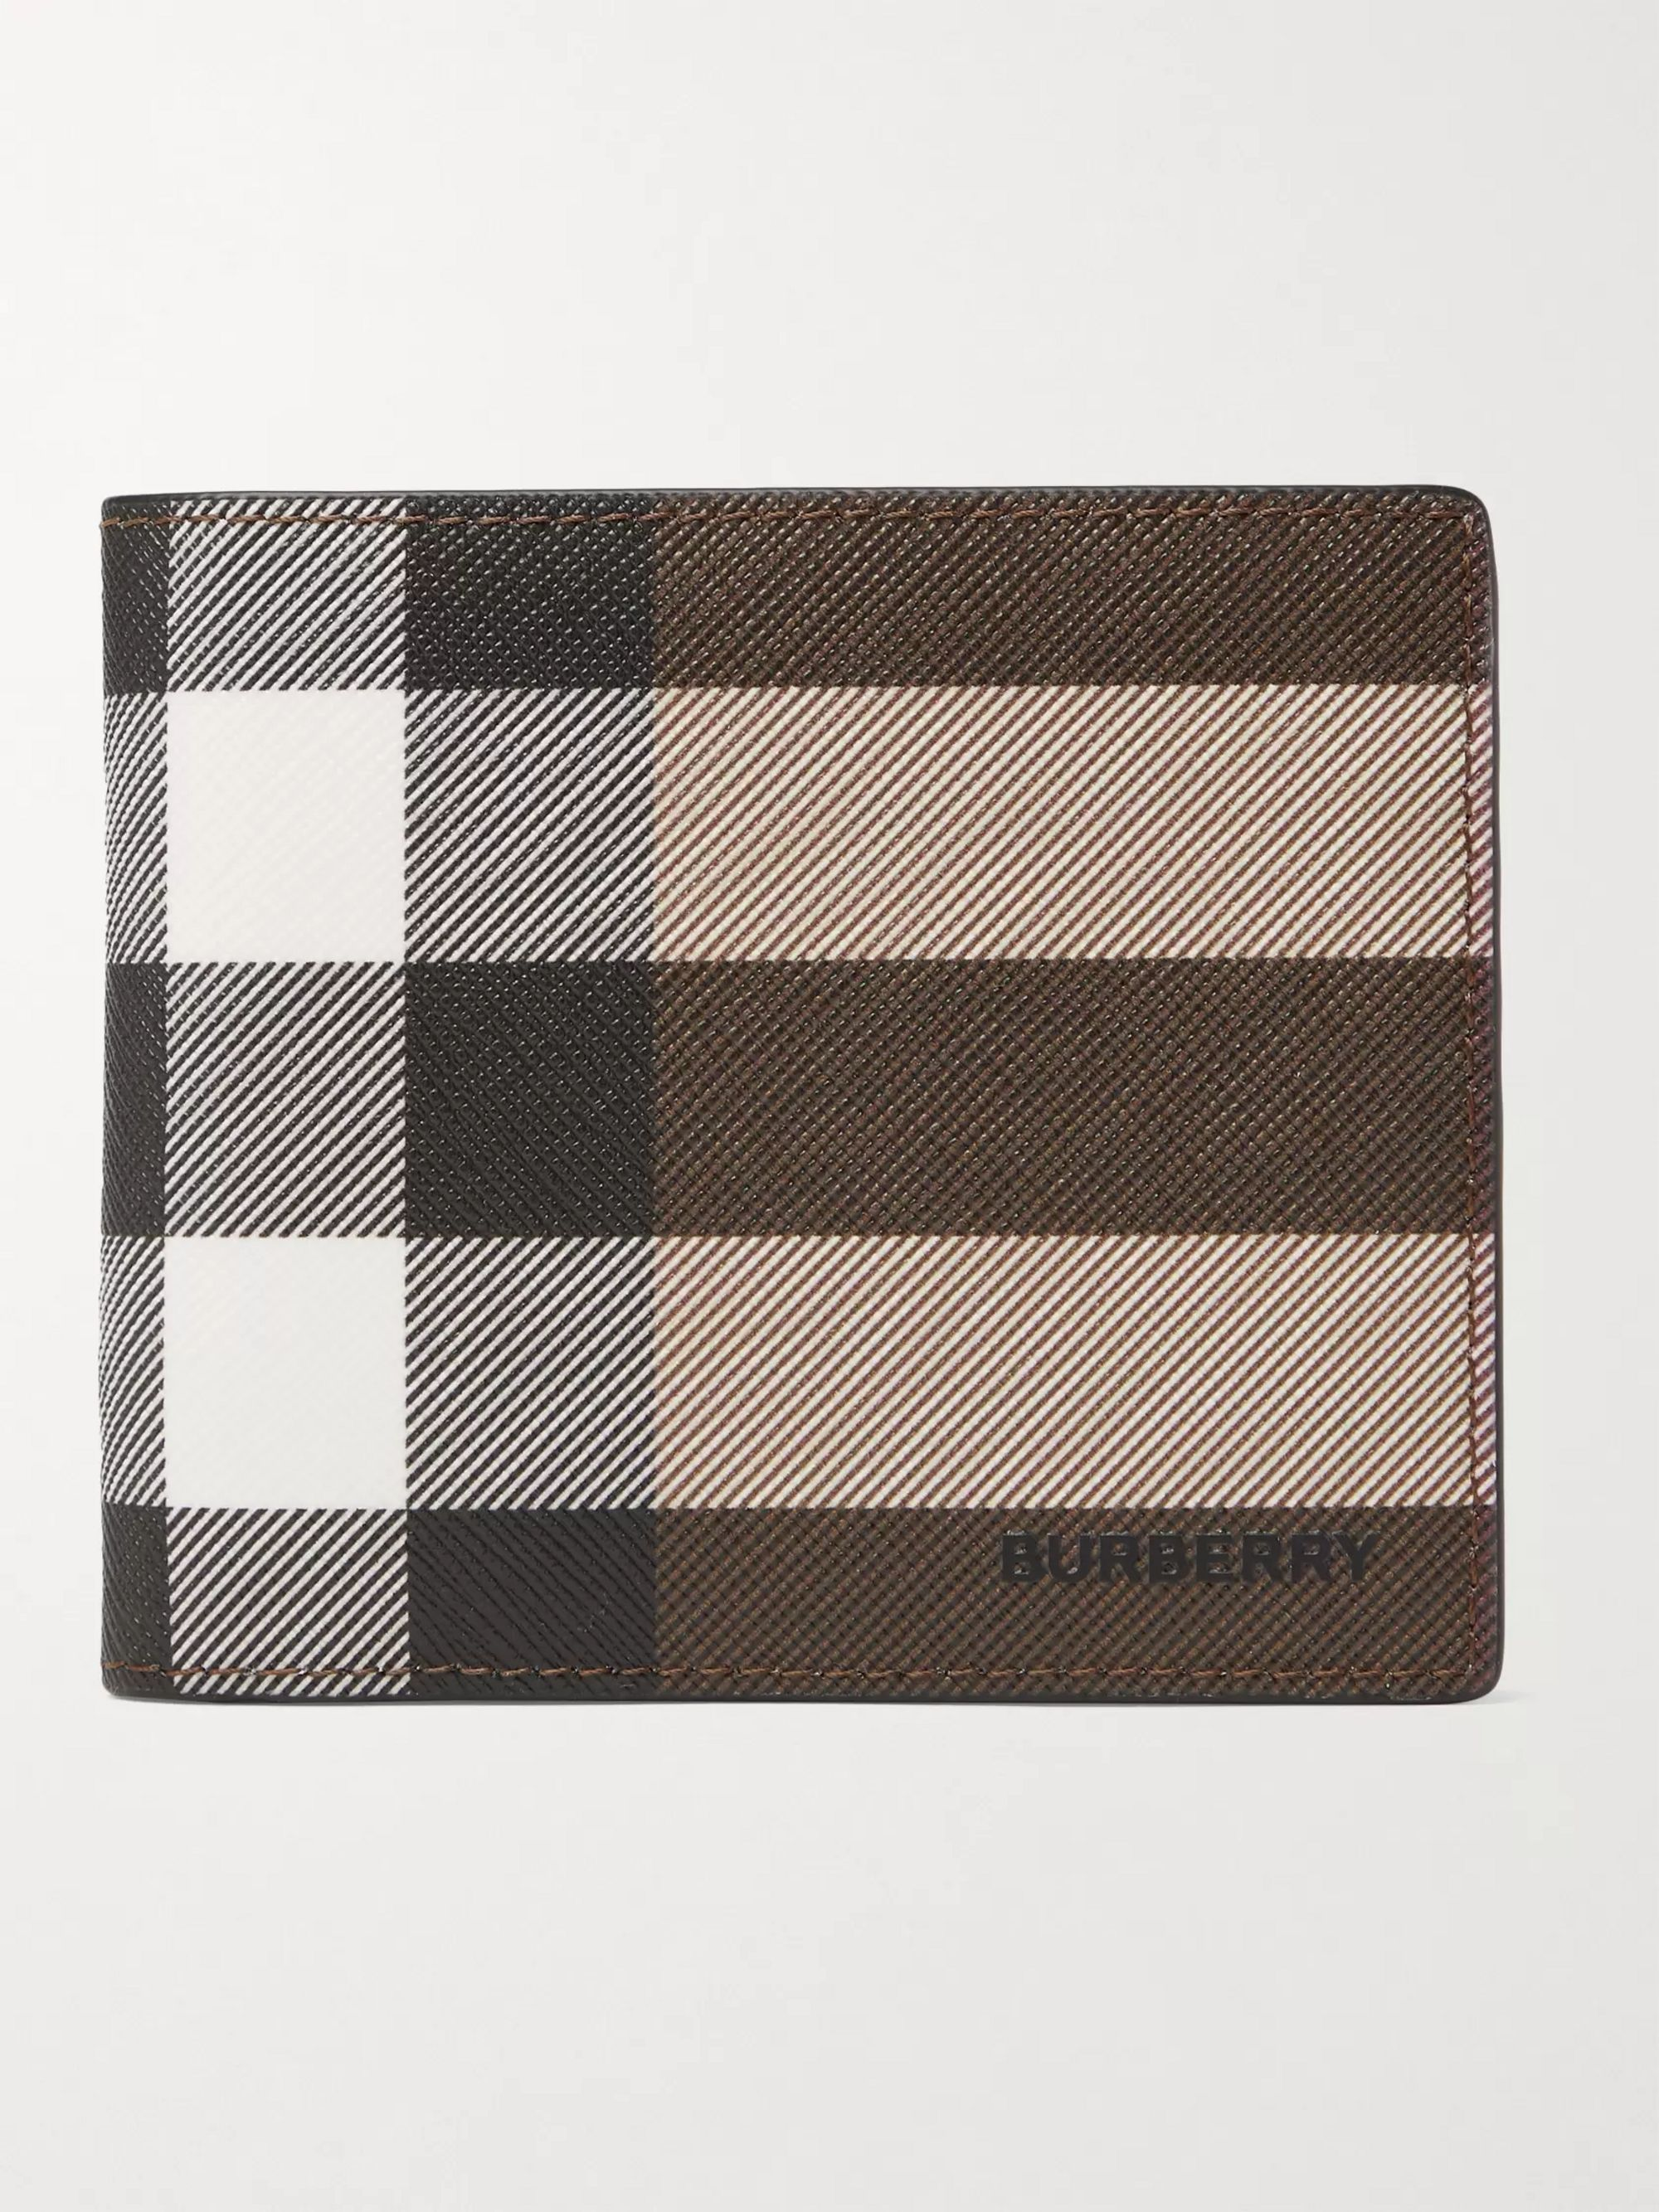 BURBERRY Logo-Appliqued Checked E-Canvas and Leather Billfold Wallet